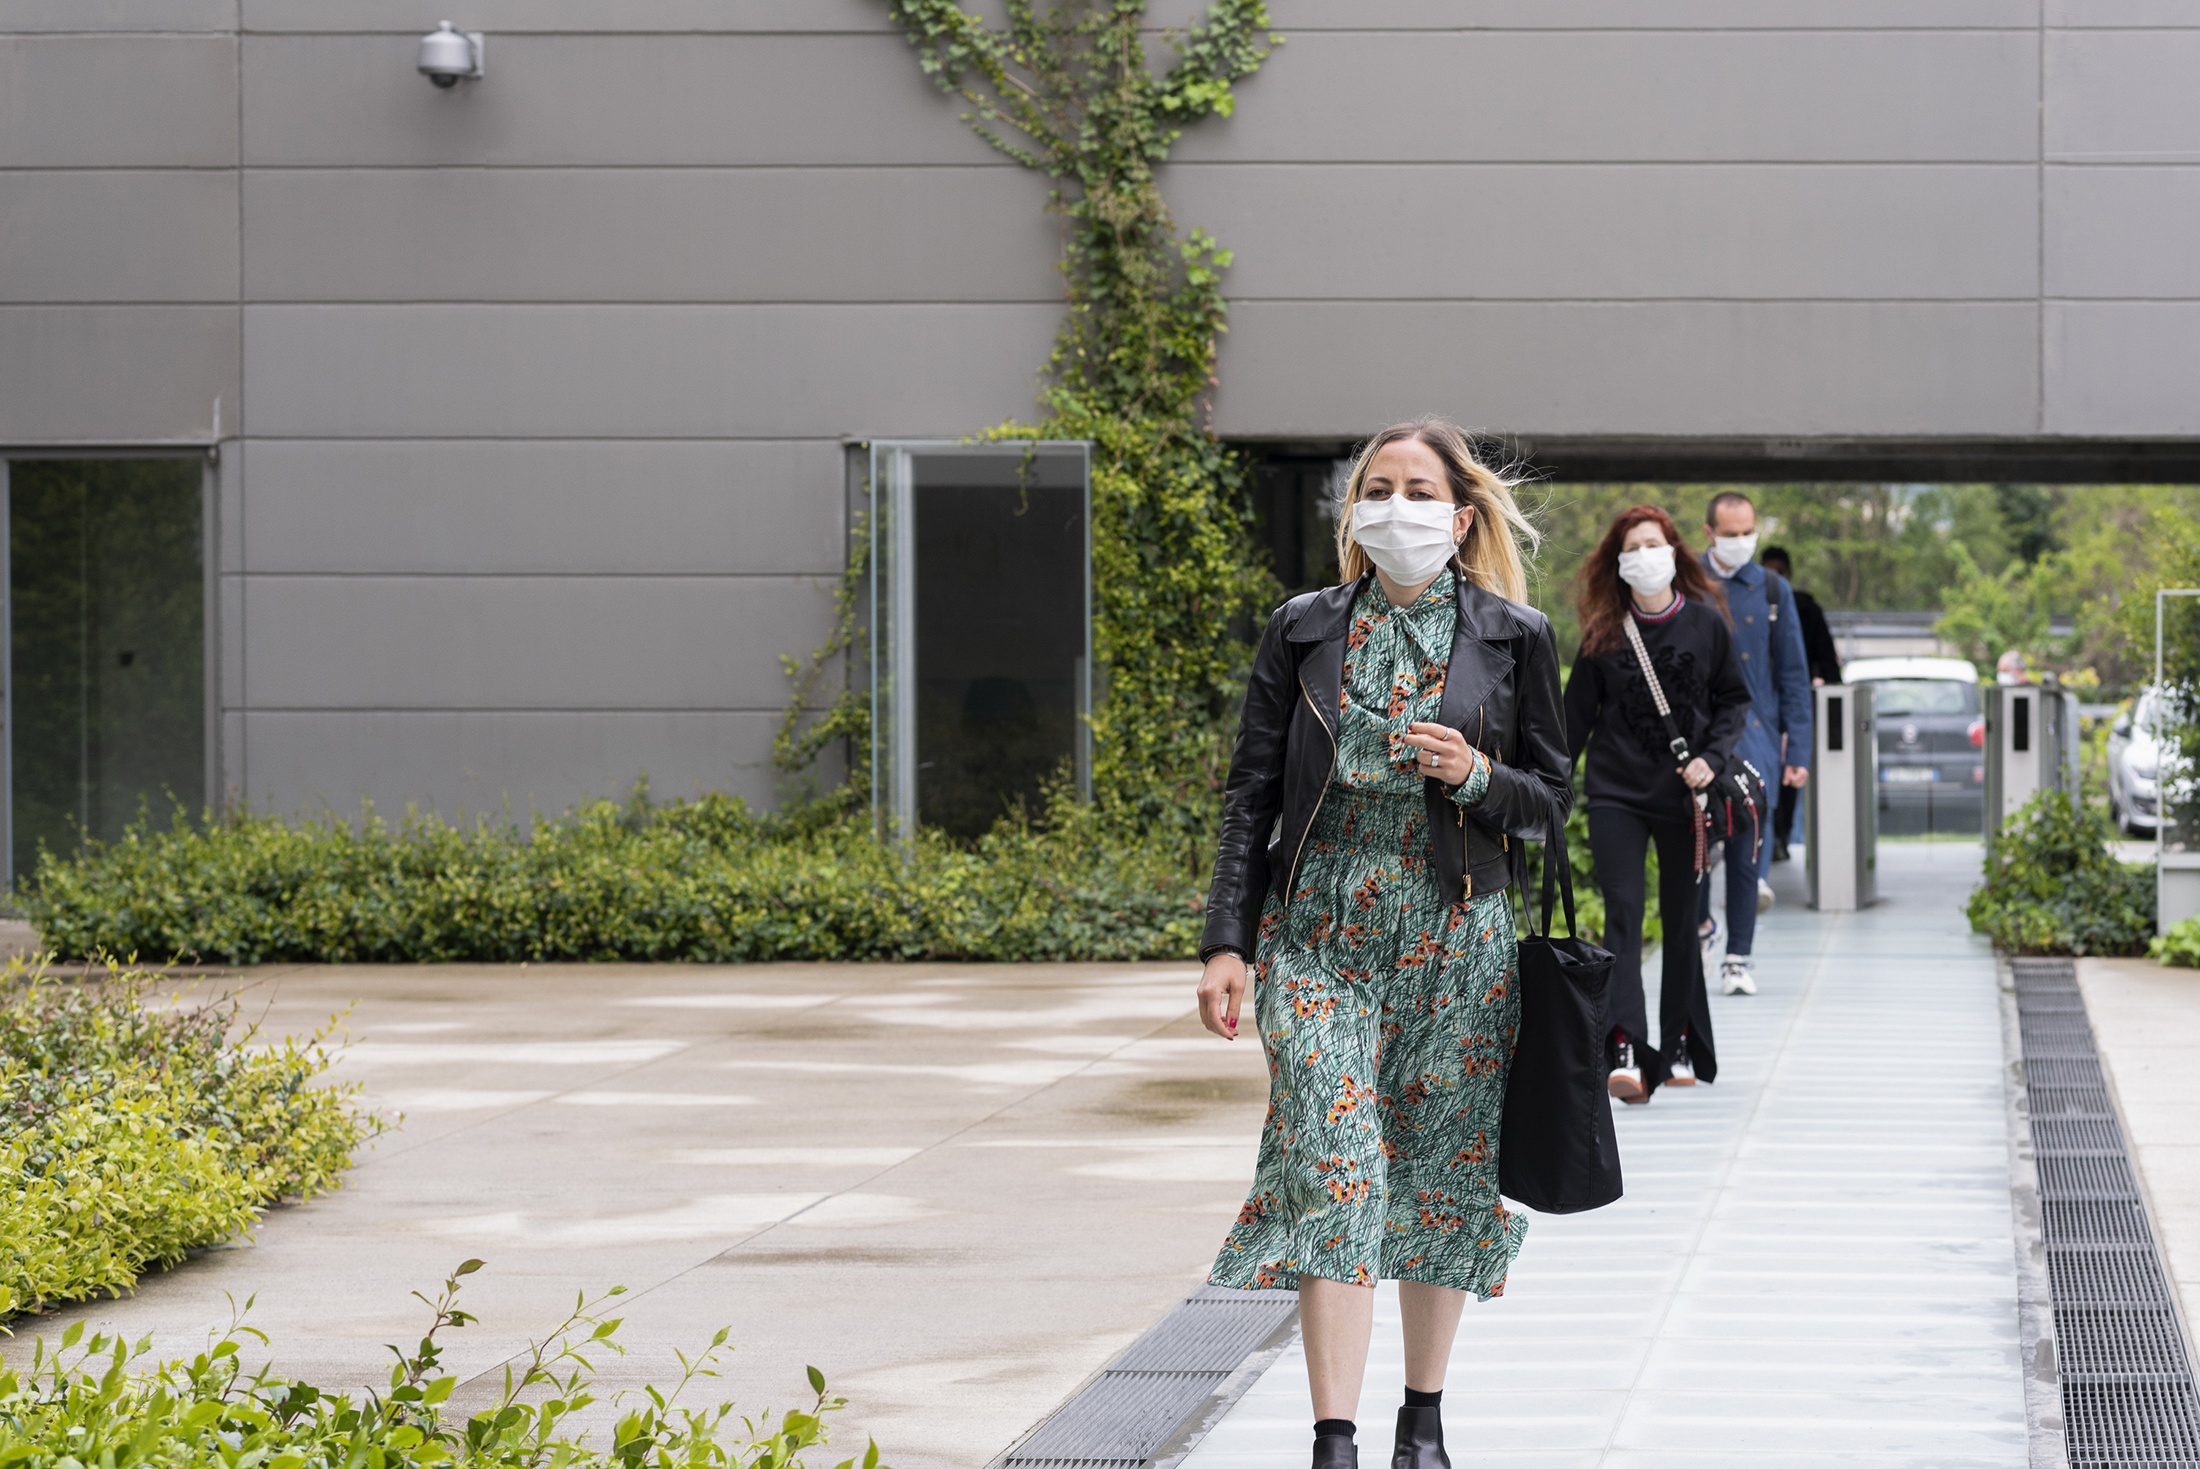 Prada Reopens Production Sites in Tuscany